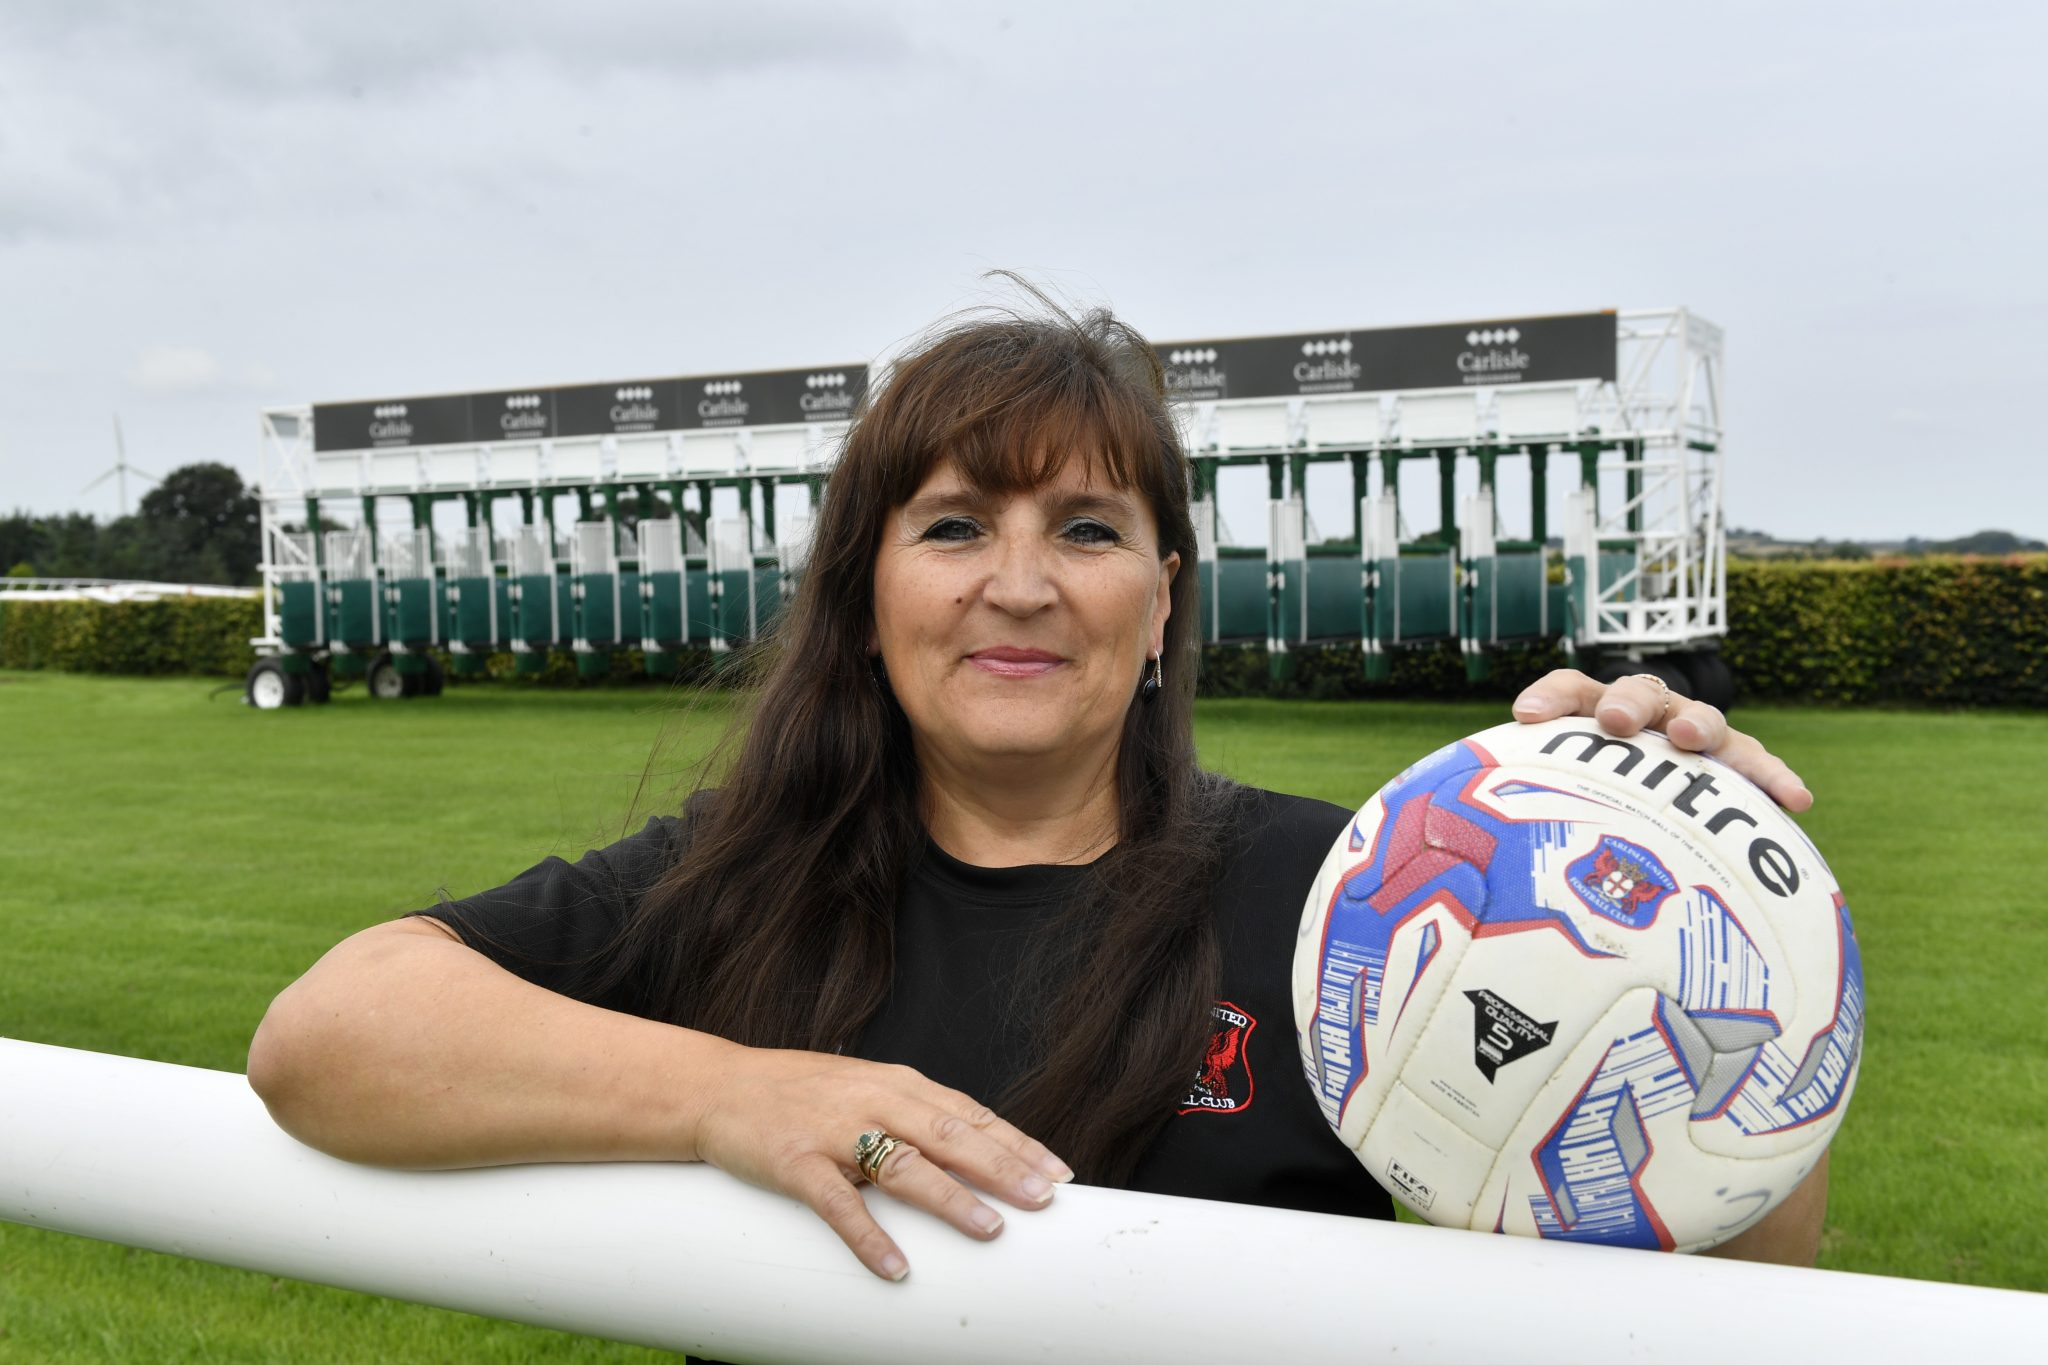 Tracy Gannon named Carlisle Racecourse's Inspirational Woman of The Year